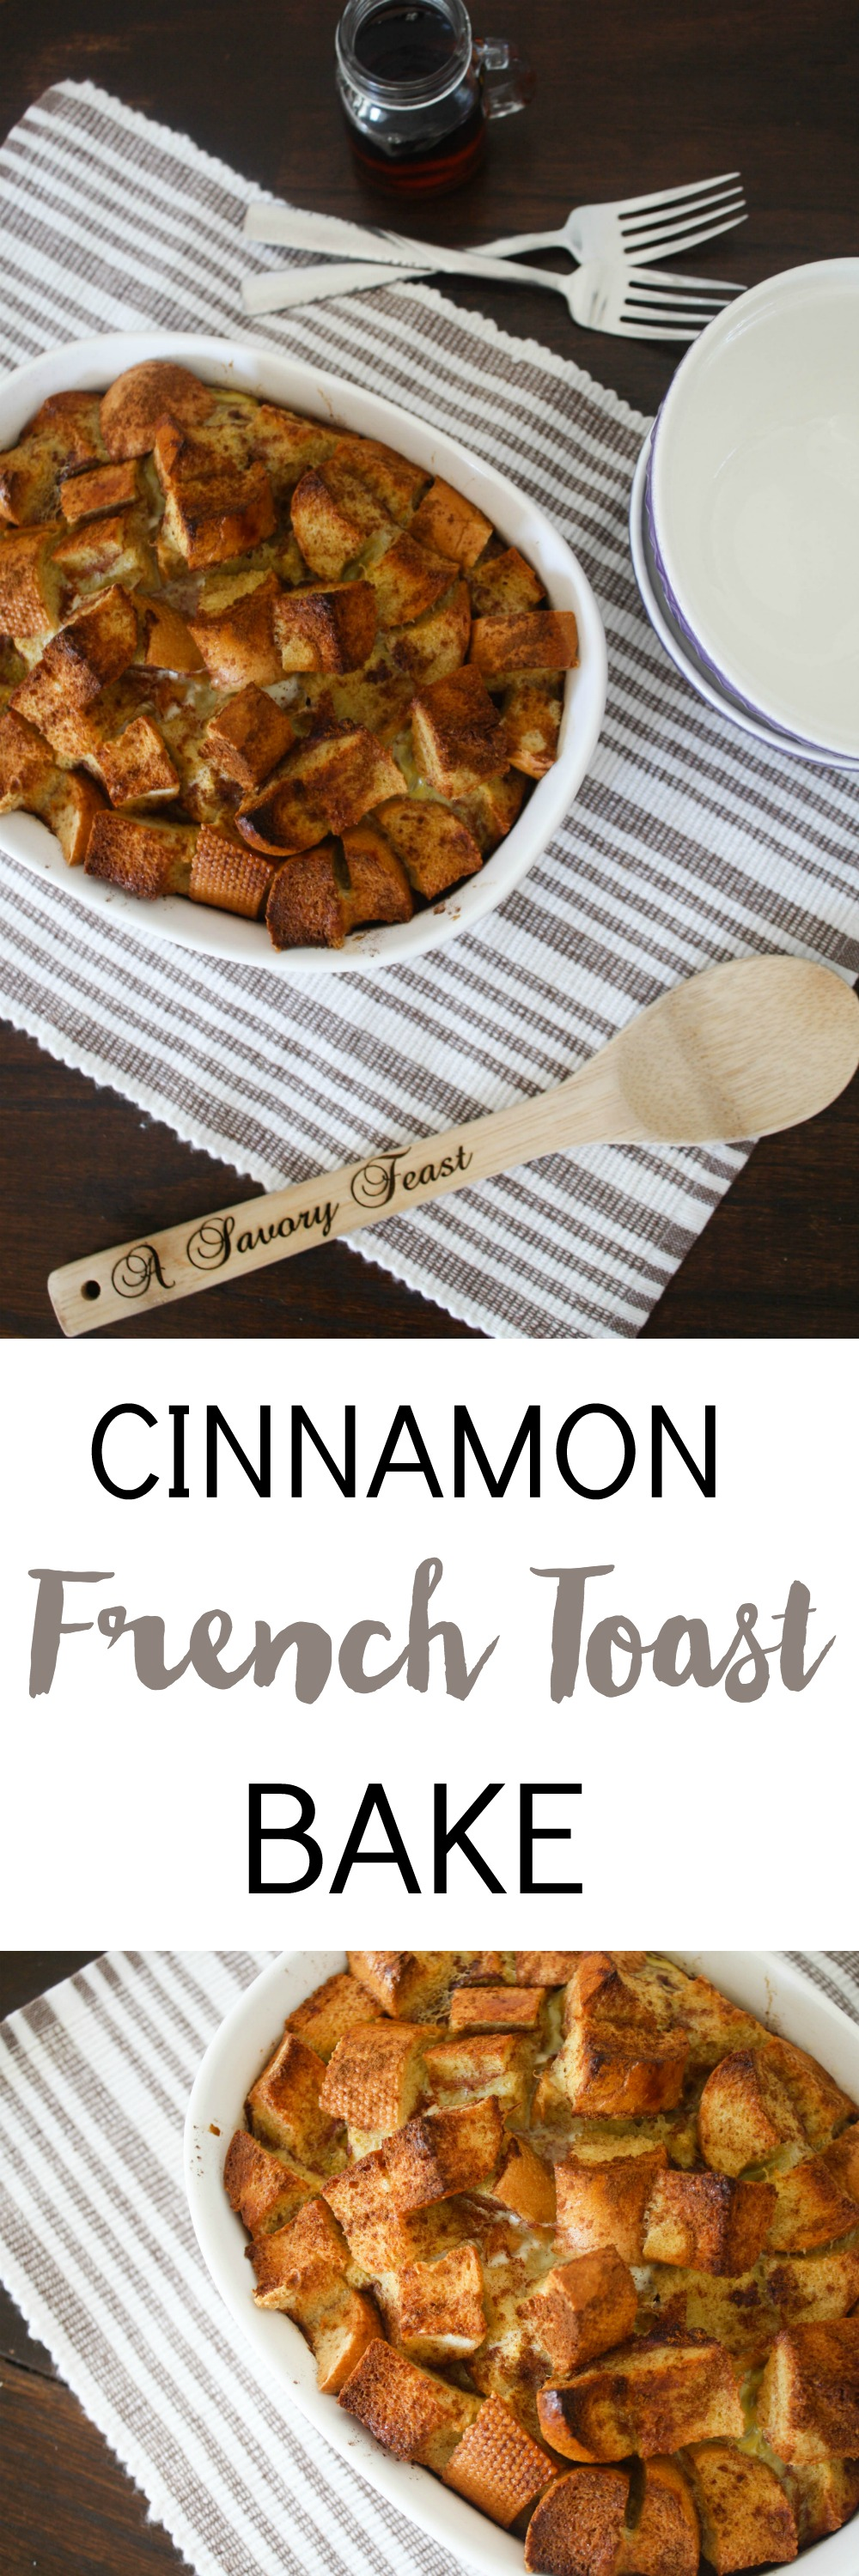 I think every weekend needs to start with a big, special breakfast like this! Cinnamon French Toast Bake is simple to assemble (no need to put it together the night before!). Sweetened only with maple syrup, it's a breakfast choice that is a little bit healthier, too. | French Toast Casserole | Breakfast Recipes | Brunch Recipes | French Bread Recipes